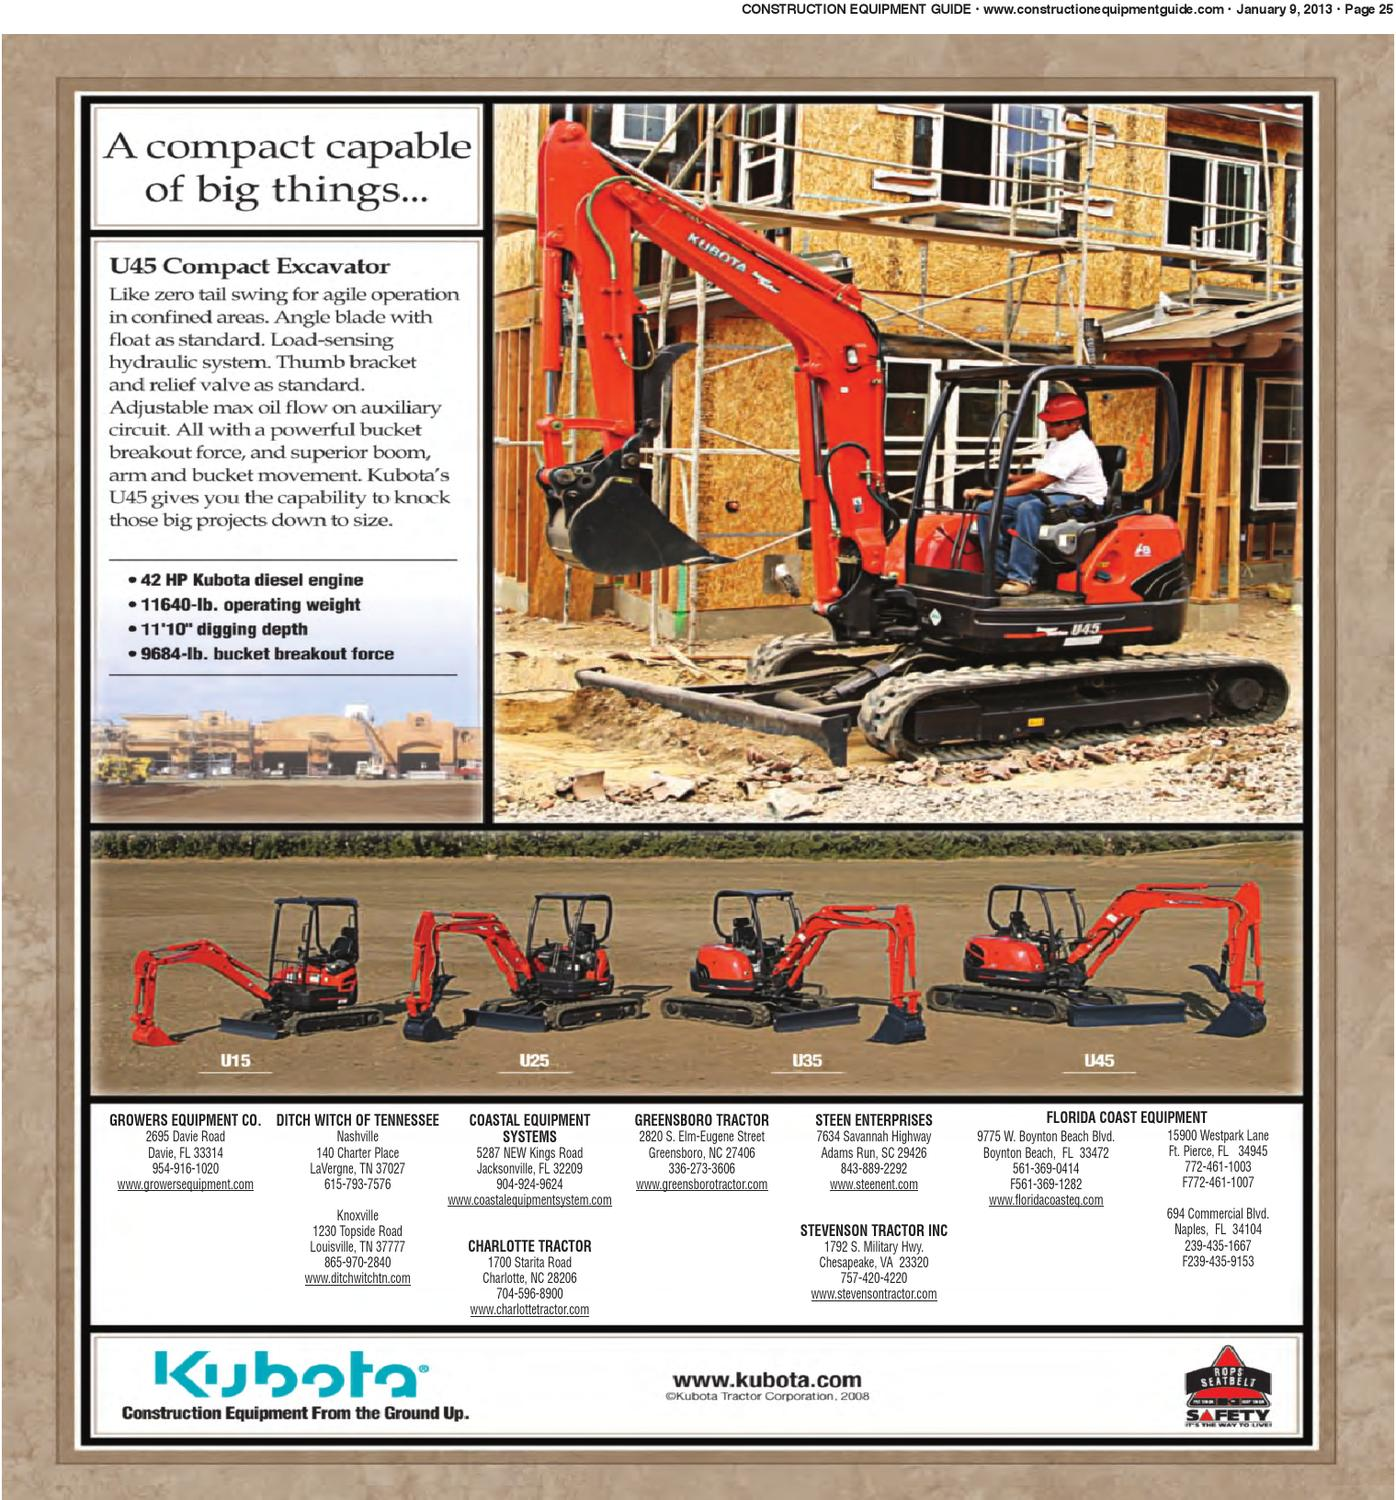 Southeast #1,2013 by Construction Equipment Guide - issuu